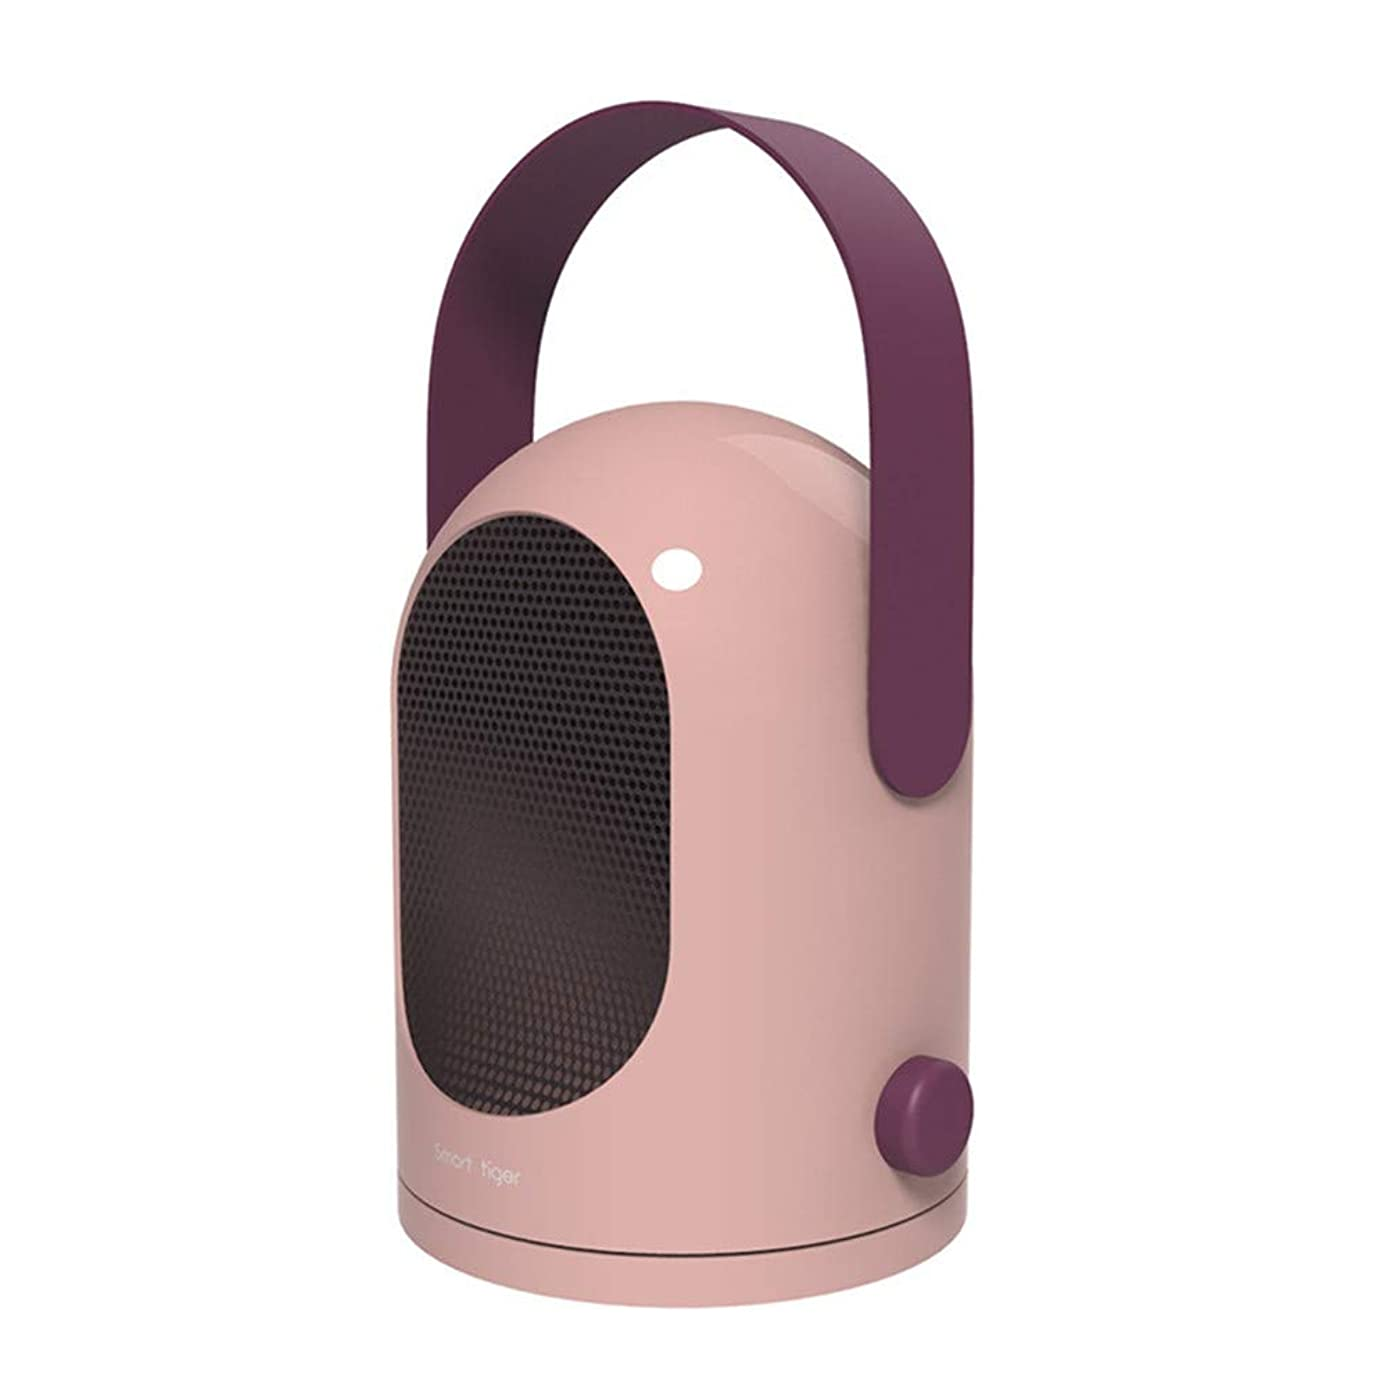 Space Heater Personal Warming Fan with Adjustable 2 Temperature Speed Options Portable Fast Heat Small Ceramic Space Heater 600W Great for Office Home Indoor Use (Pink)